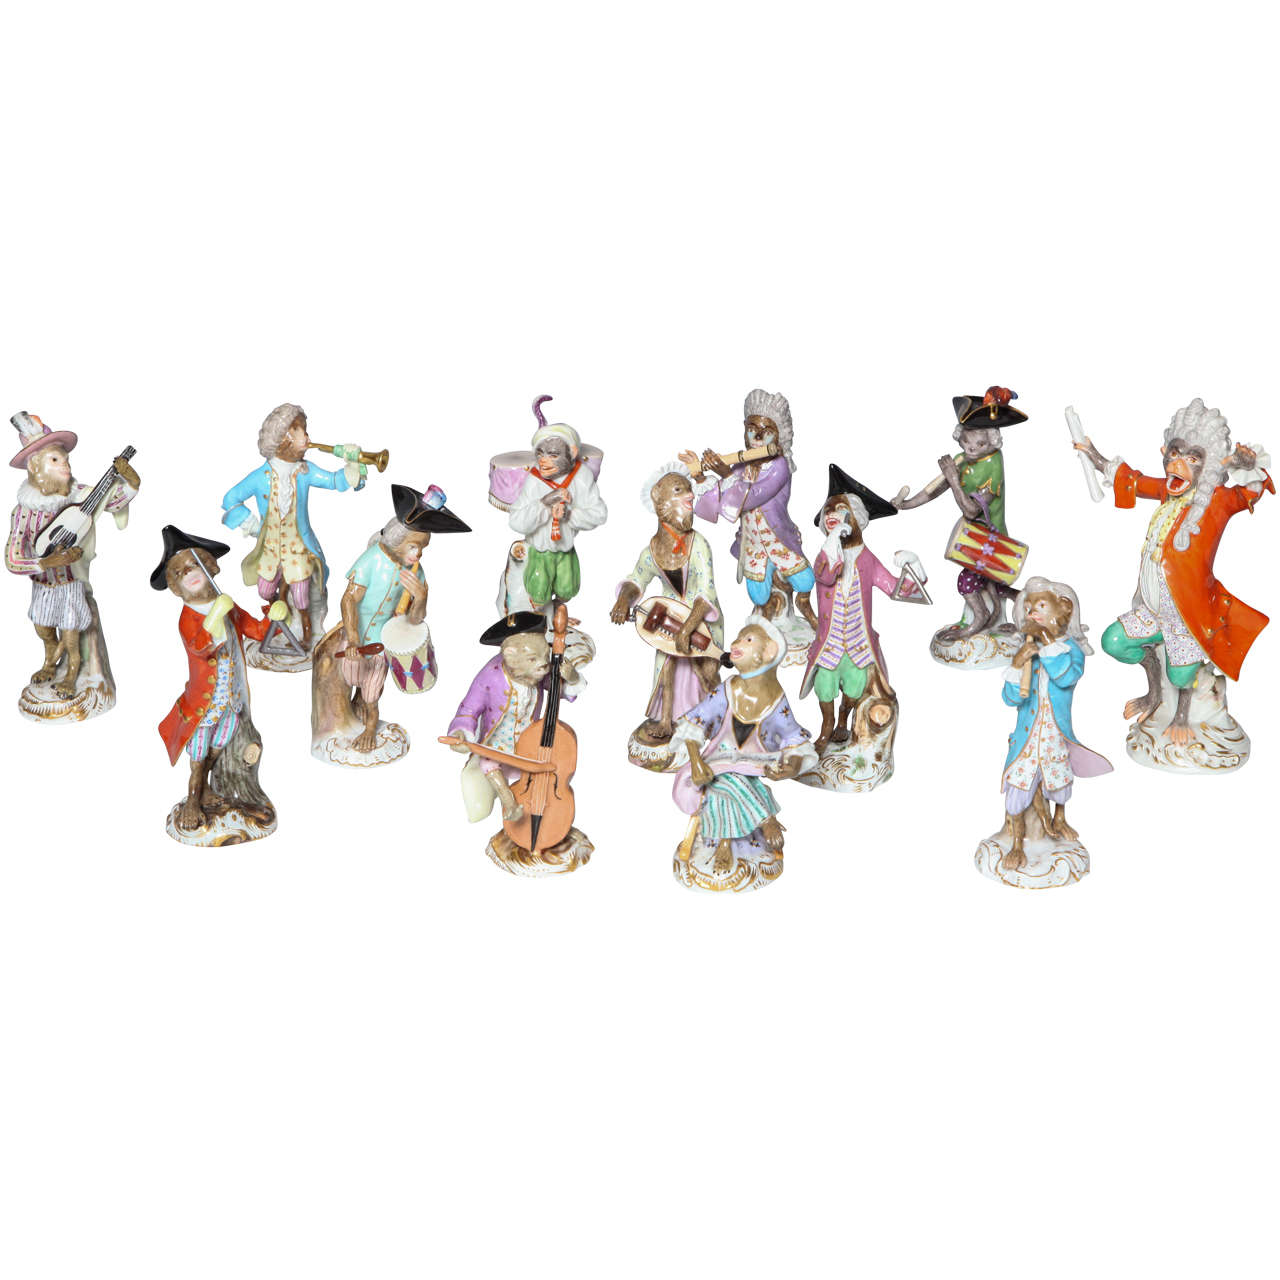 An early Meissen Porcelain Singerie style Monkey Musician Figurine. Dressed in full male noble attire and wig the monkey merrily plays the trumpet assuming both the stance and mannerism of a nobleman. After the 18th century models by Peter Reinicke